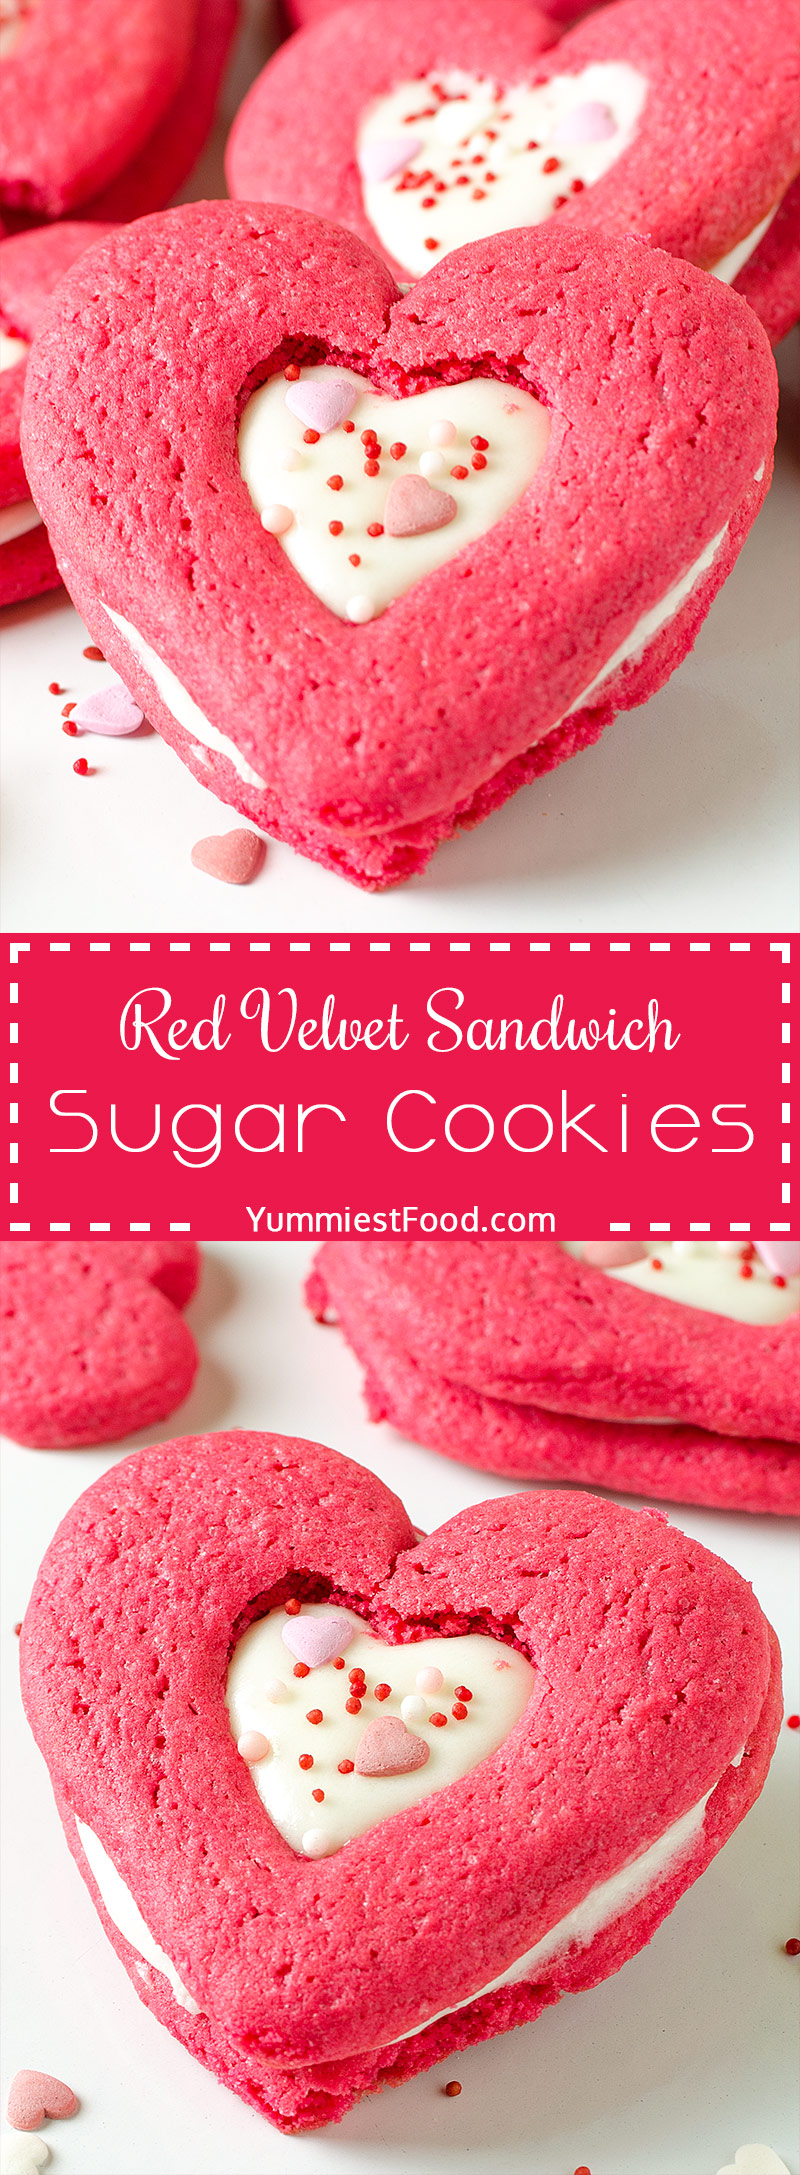 VALENTINES RED VELVET SANDWICH SUGAR COOKIES – Two red velvet sugar cookies are sandwich with cream cheese filling and topped with cute Valentines sprinkles